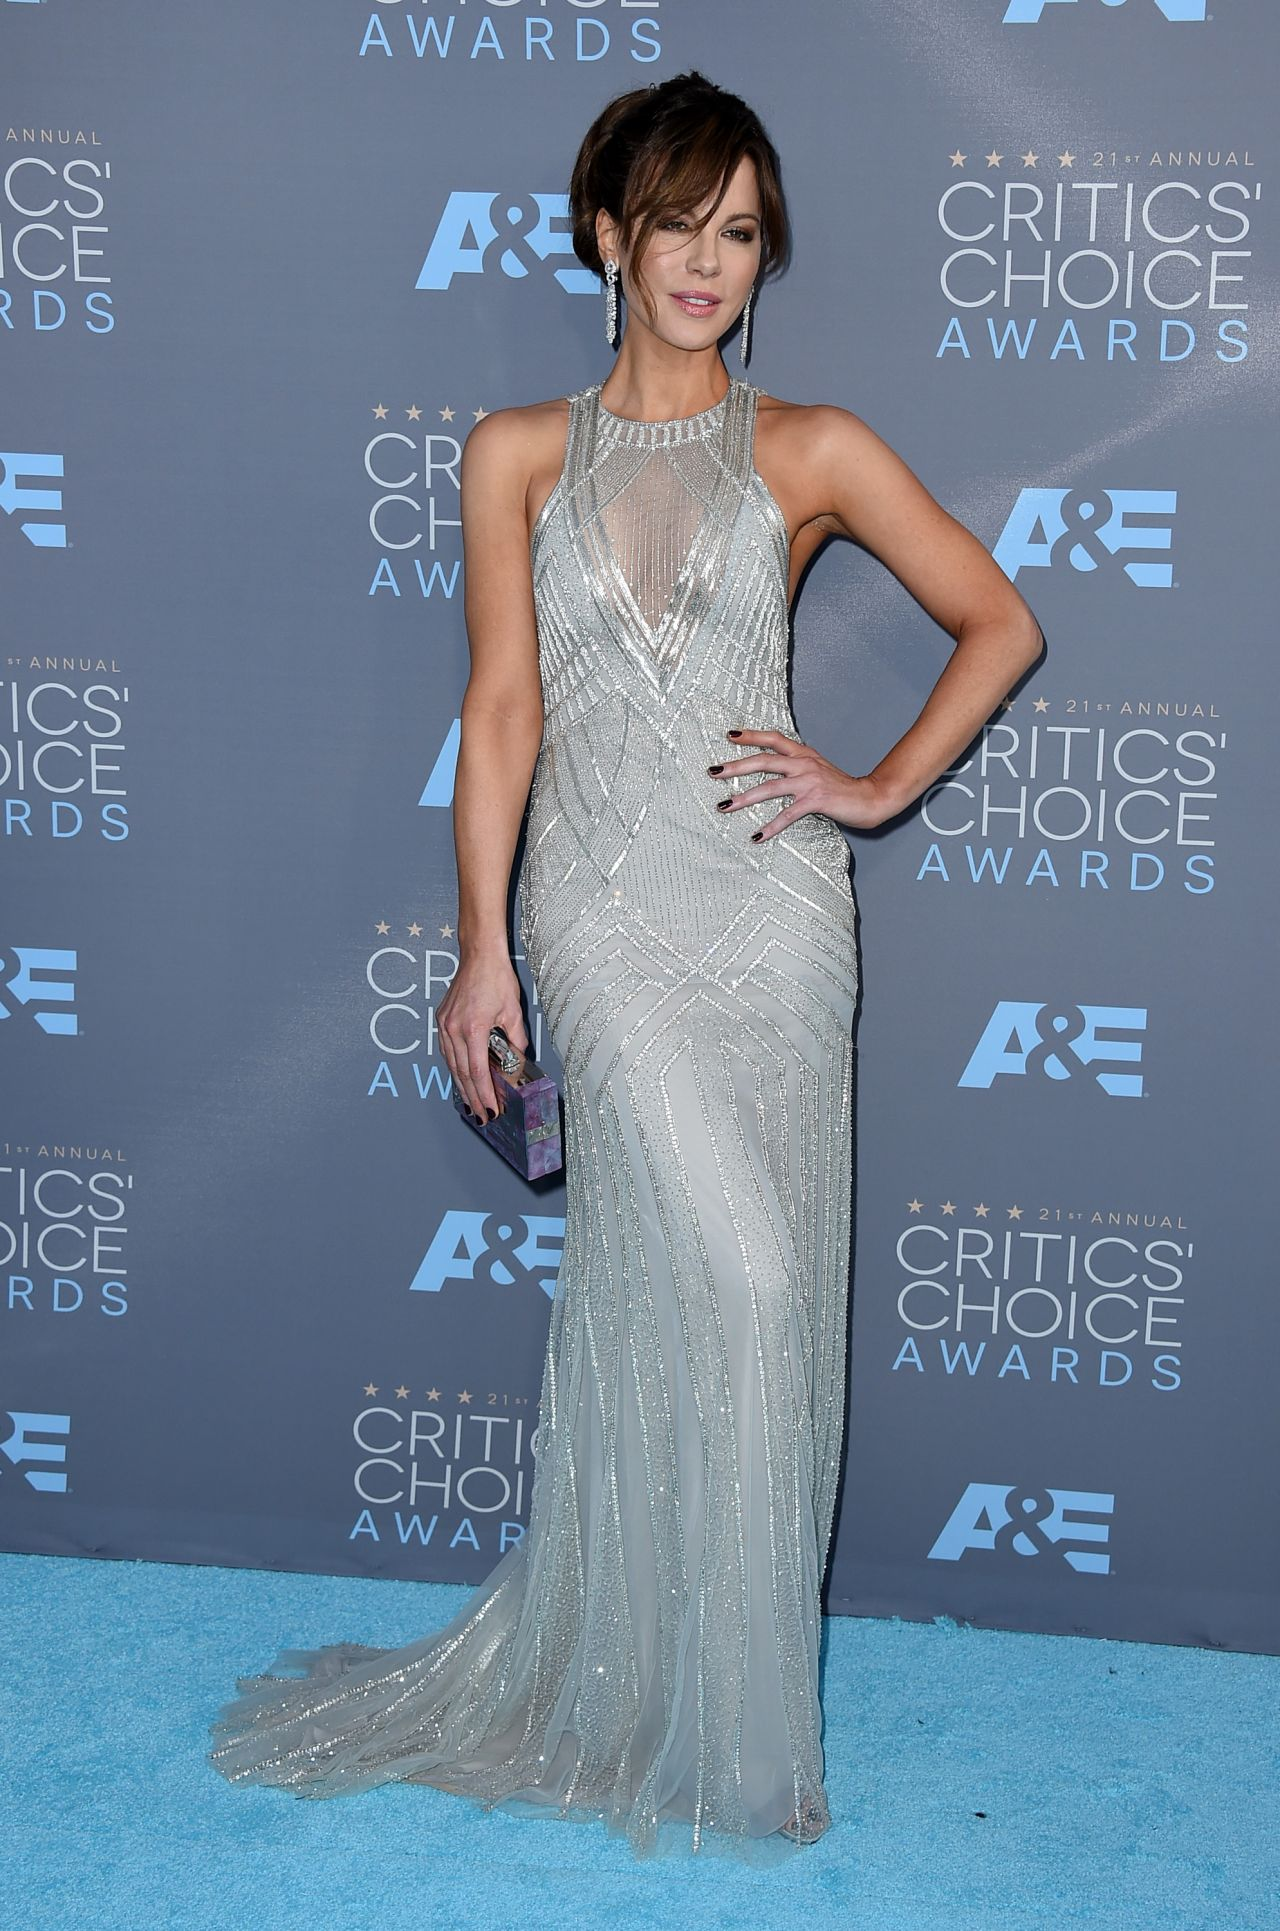 kate-beckinsale-2016-critics-choice-awards-in-santa-monica-2